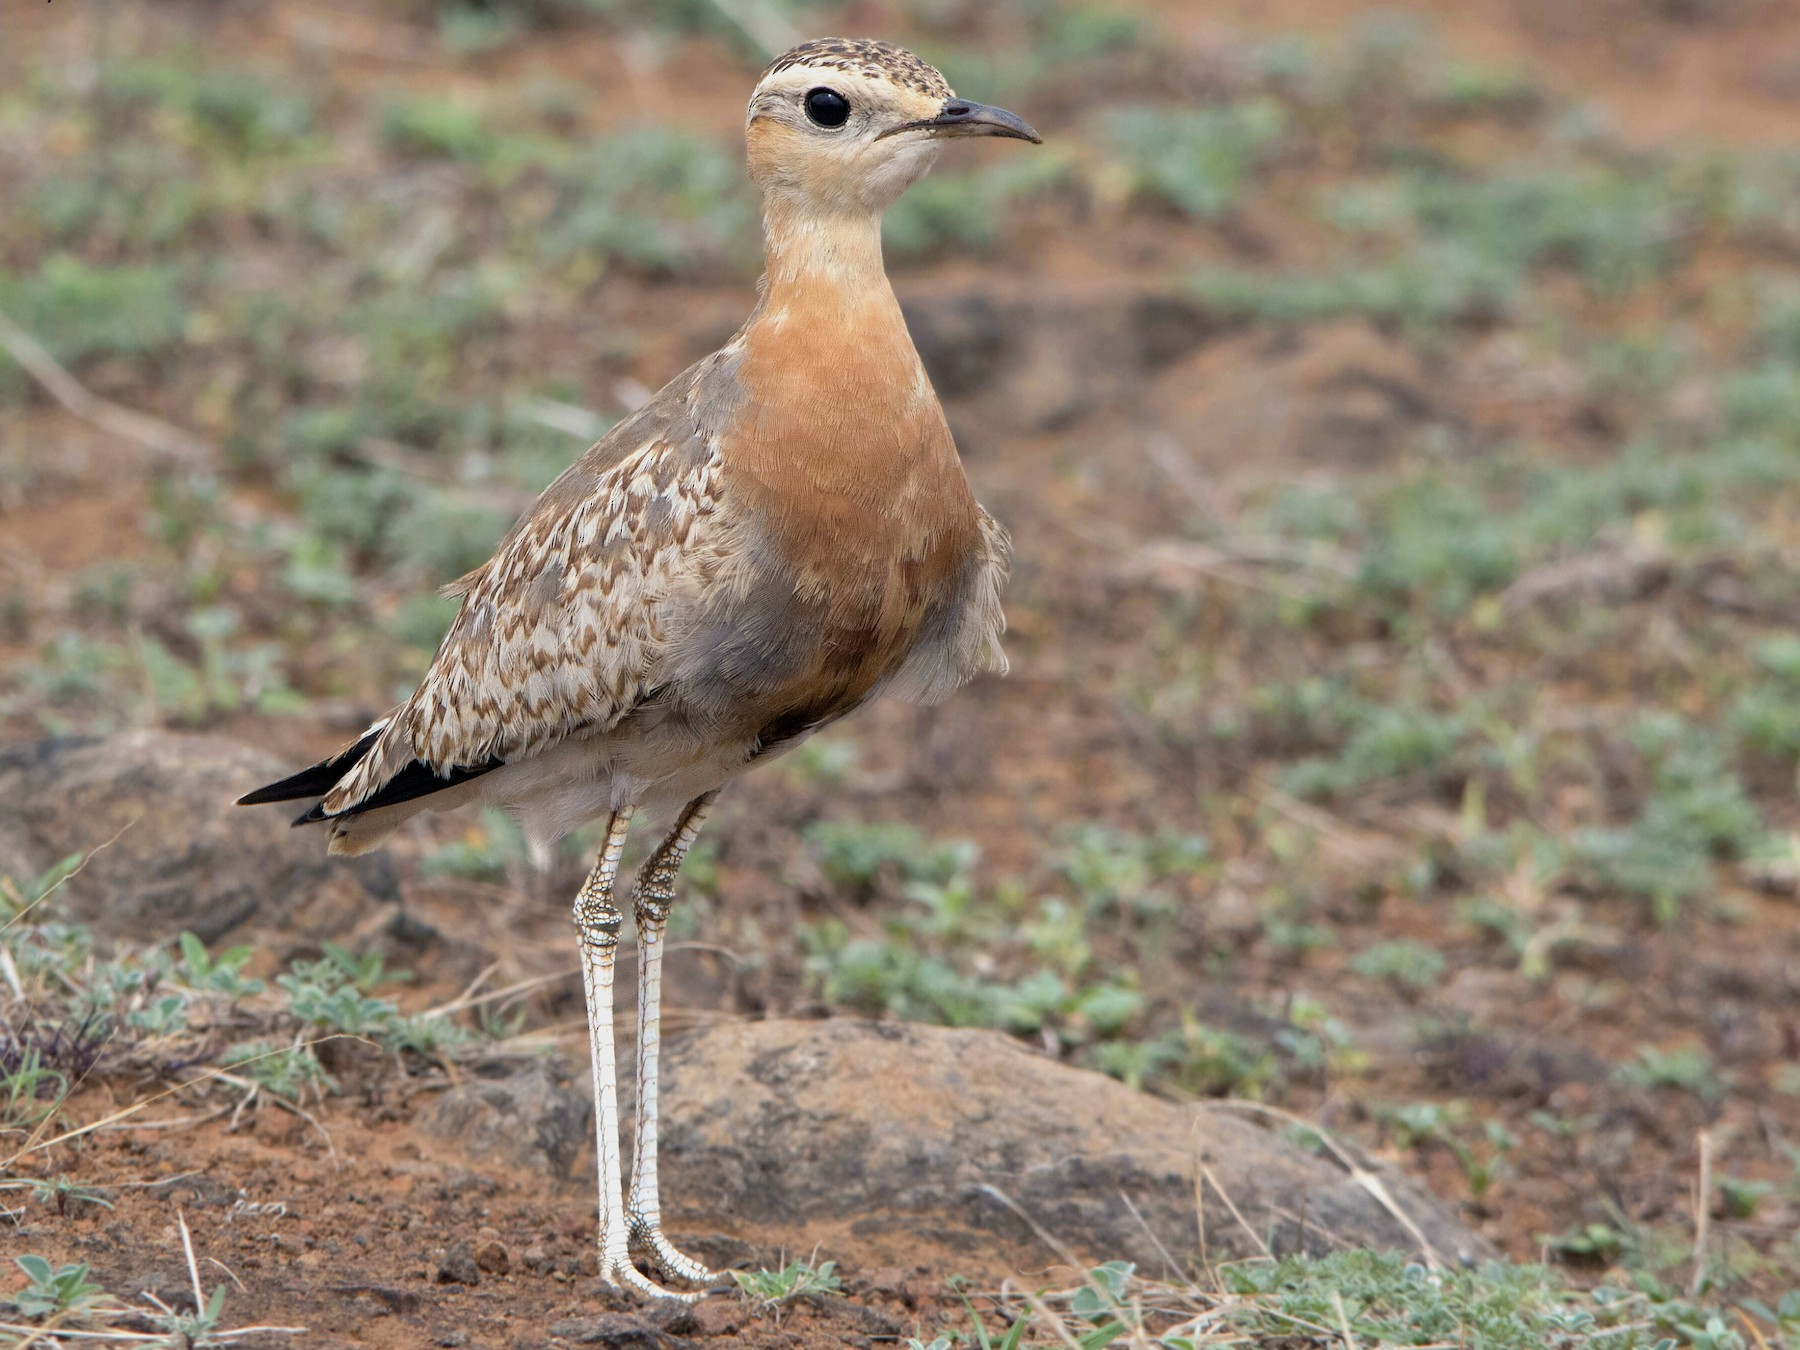 Indian Courser - Swapnil Thatte